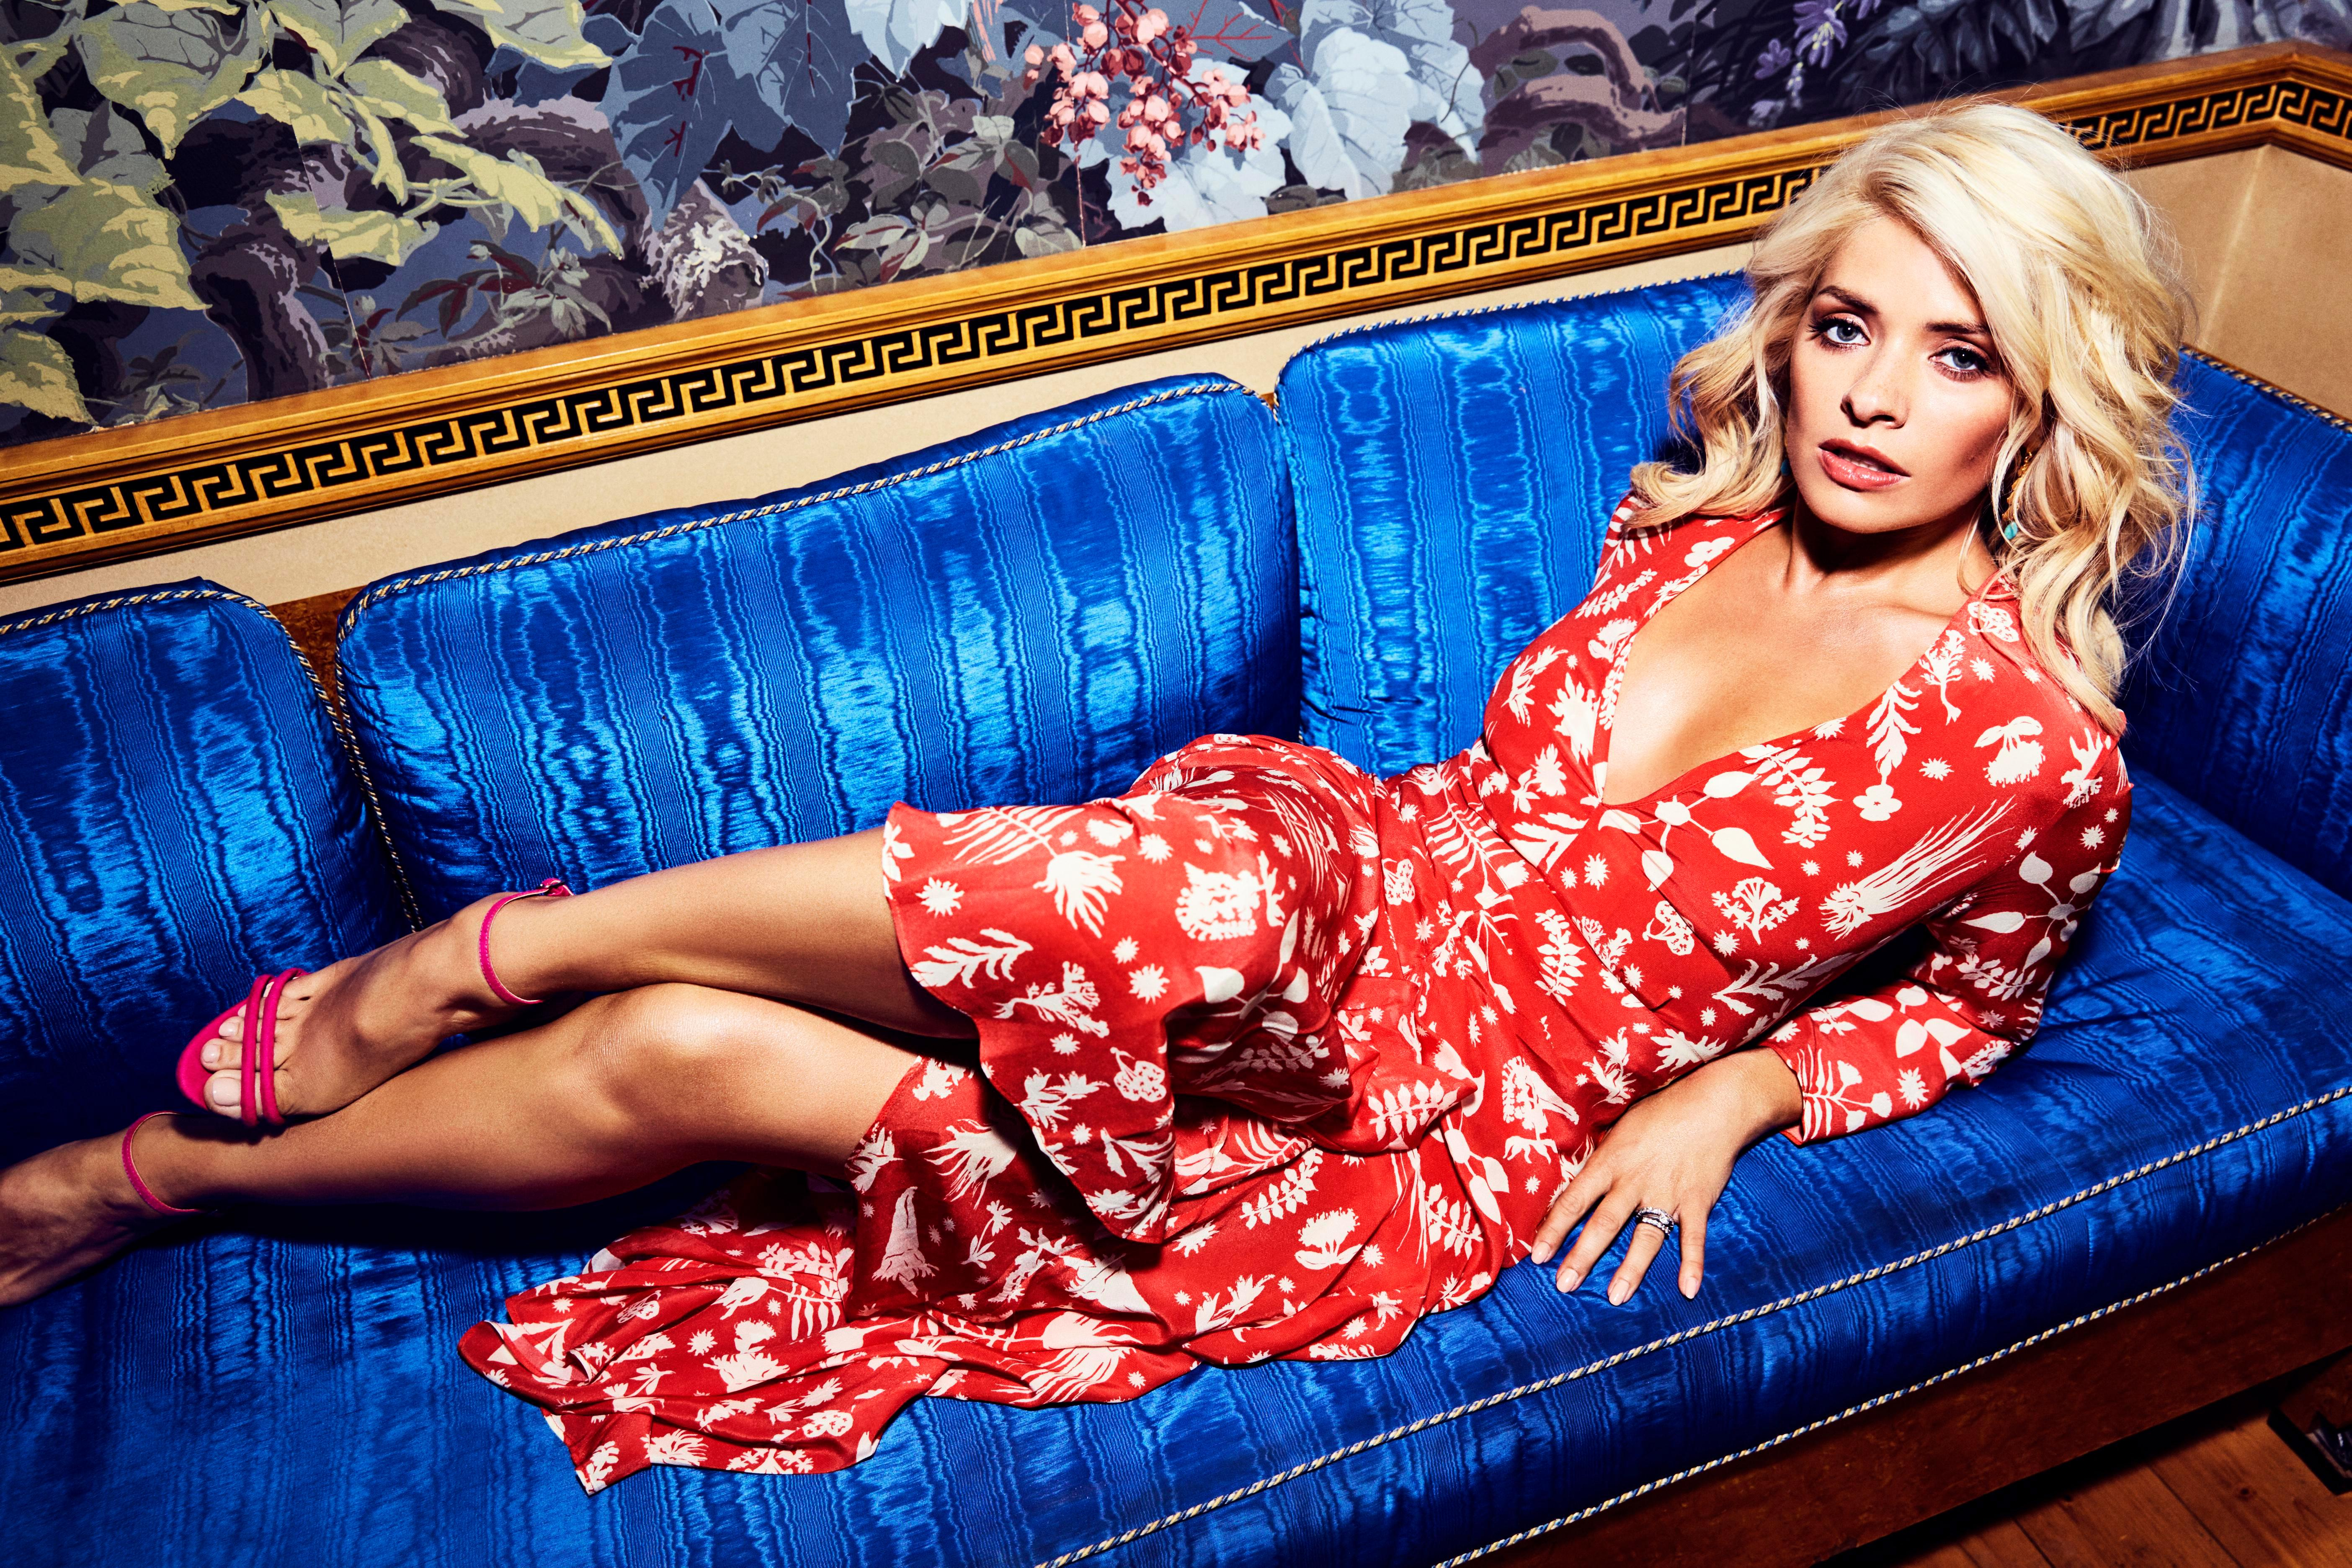 5616x3744 - Holly Willoughby Wallpapers 15